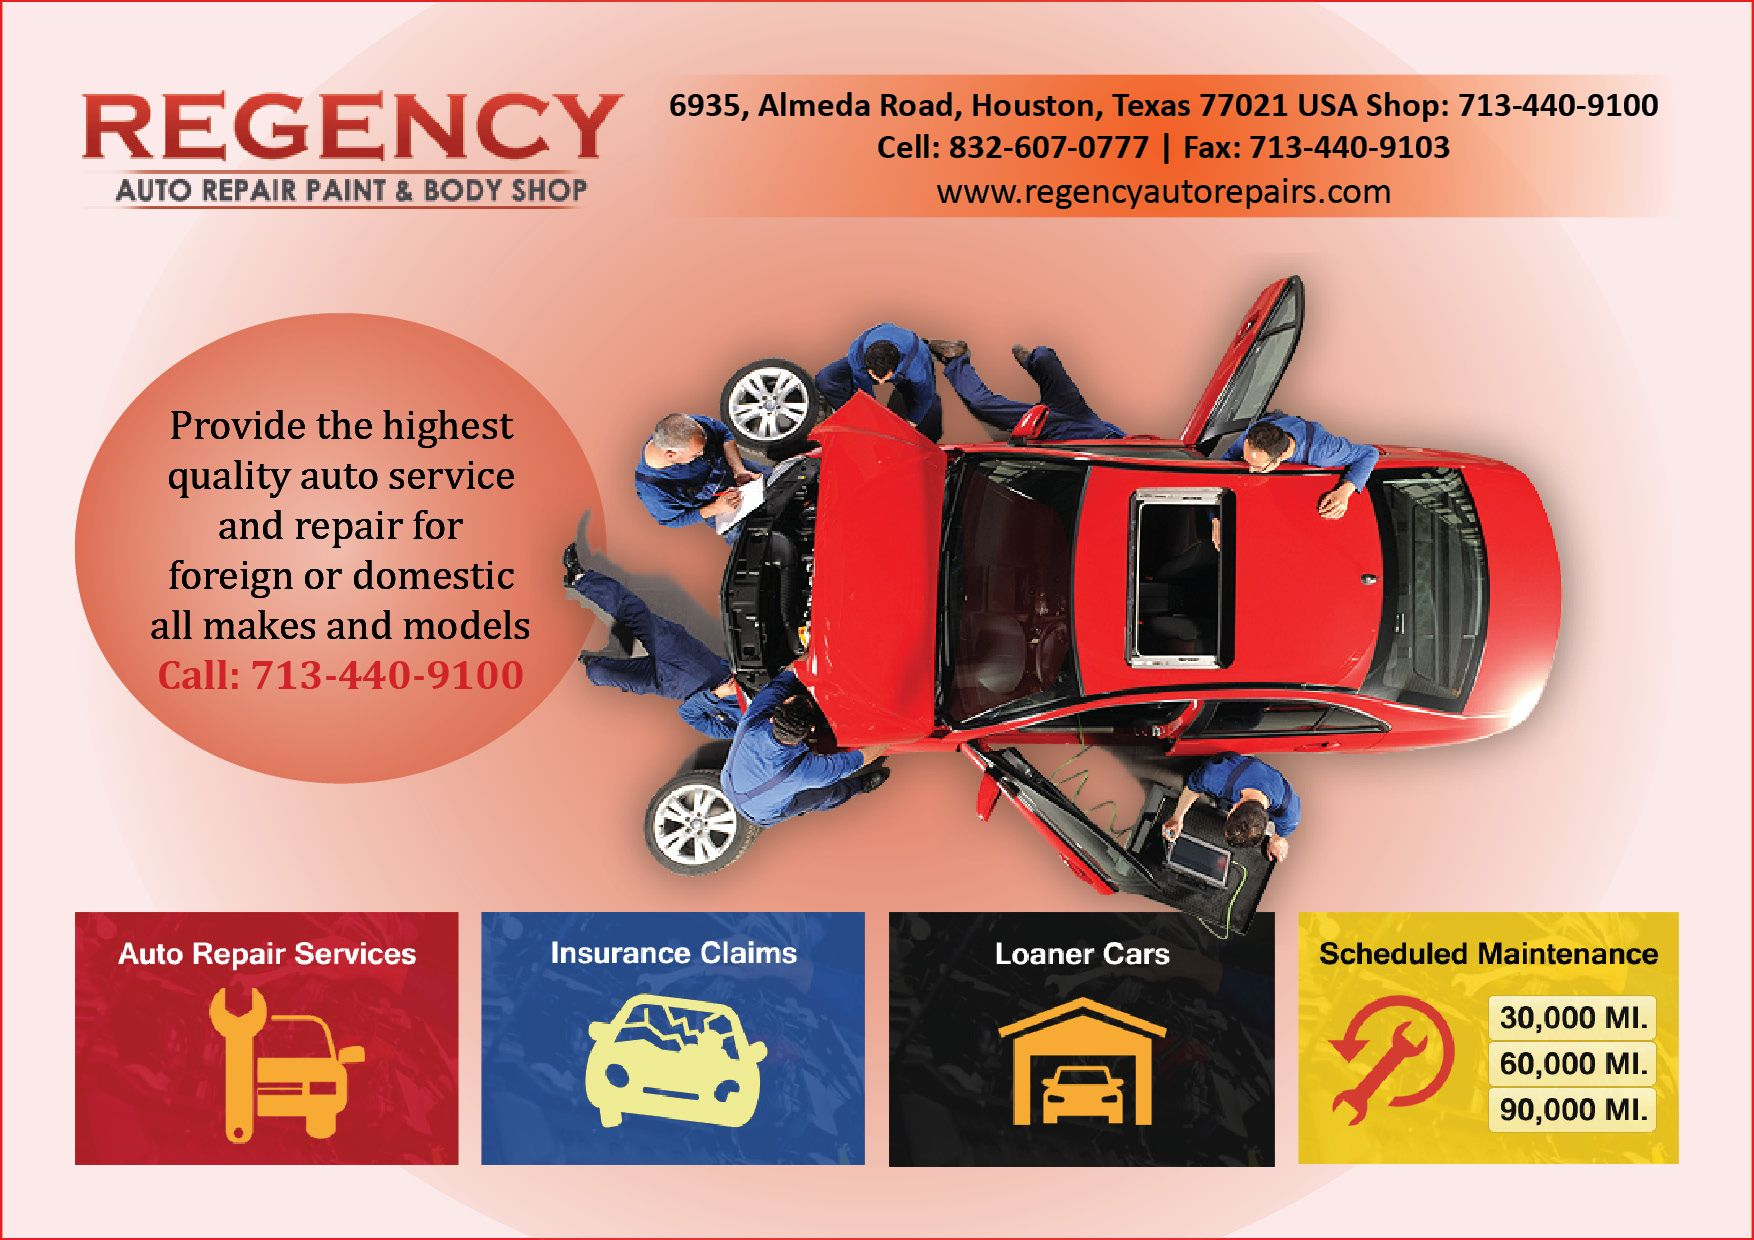 Regency Auto Repairs Provide The Highest Quality Auto Service And